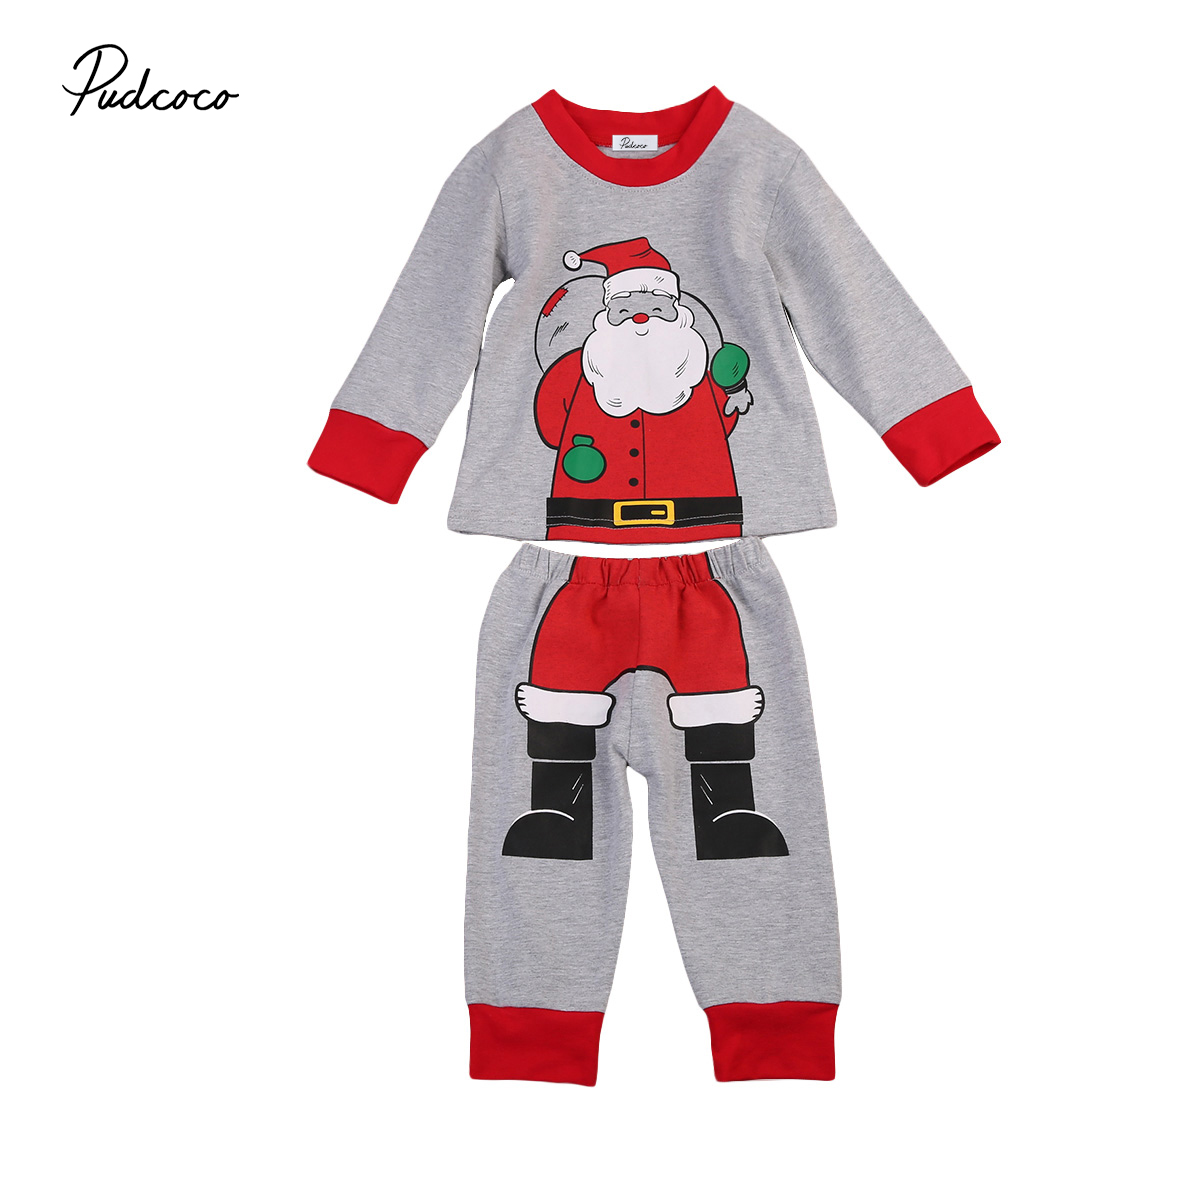 2Pcs Cotton Toddler Kids Baby Boys Clothes Long sleeve Xmas Santa Claus Pjs Pyjamas Sleepwear Age 0-6Year